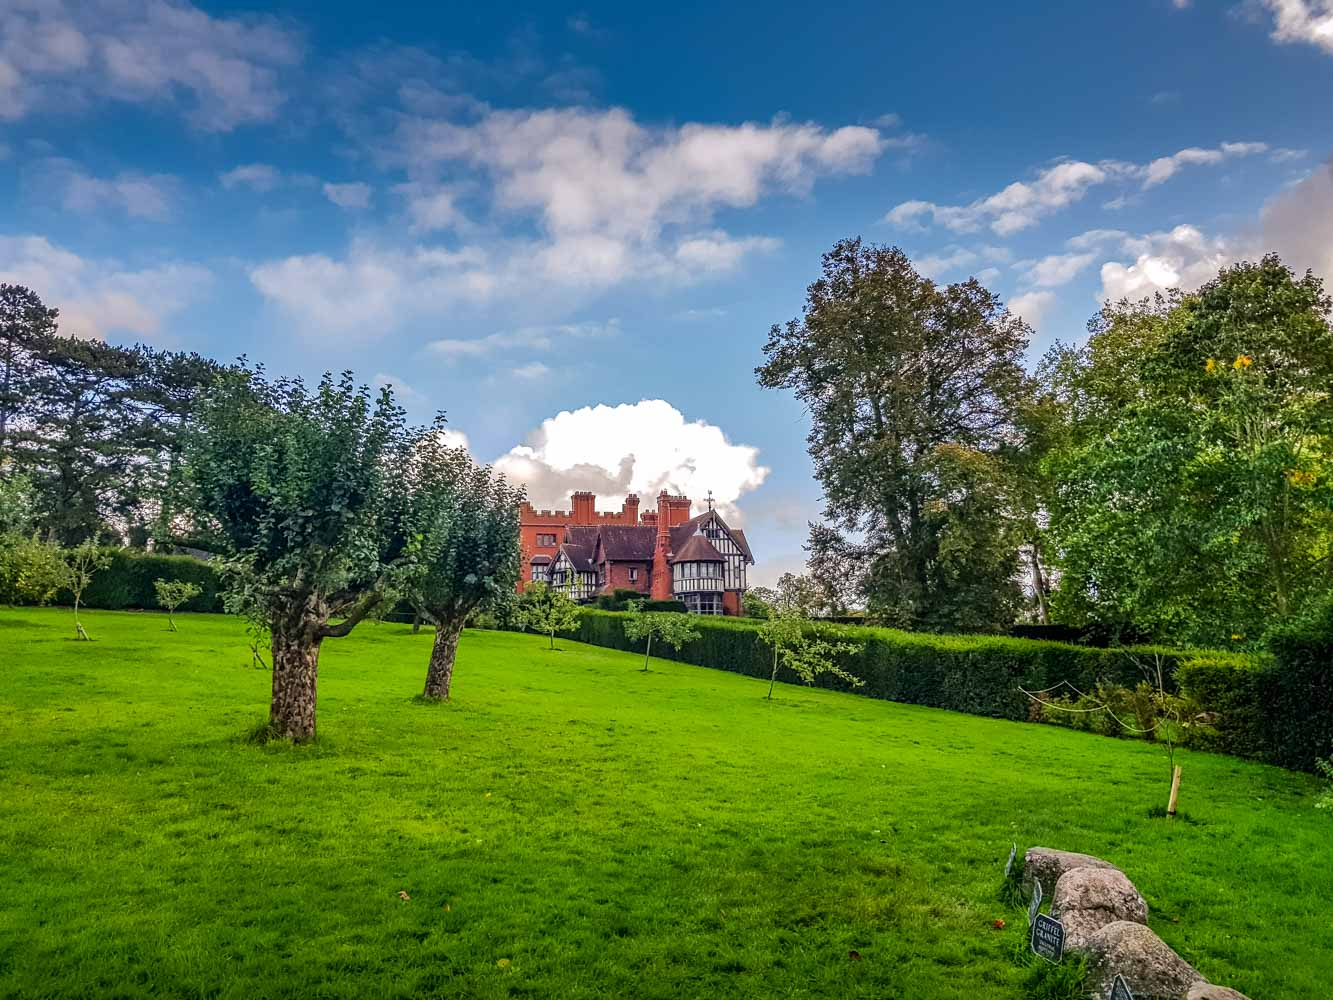 20191006_151711 A Walk Around Wightwick Manor and Gardens